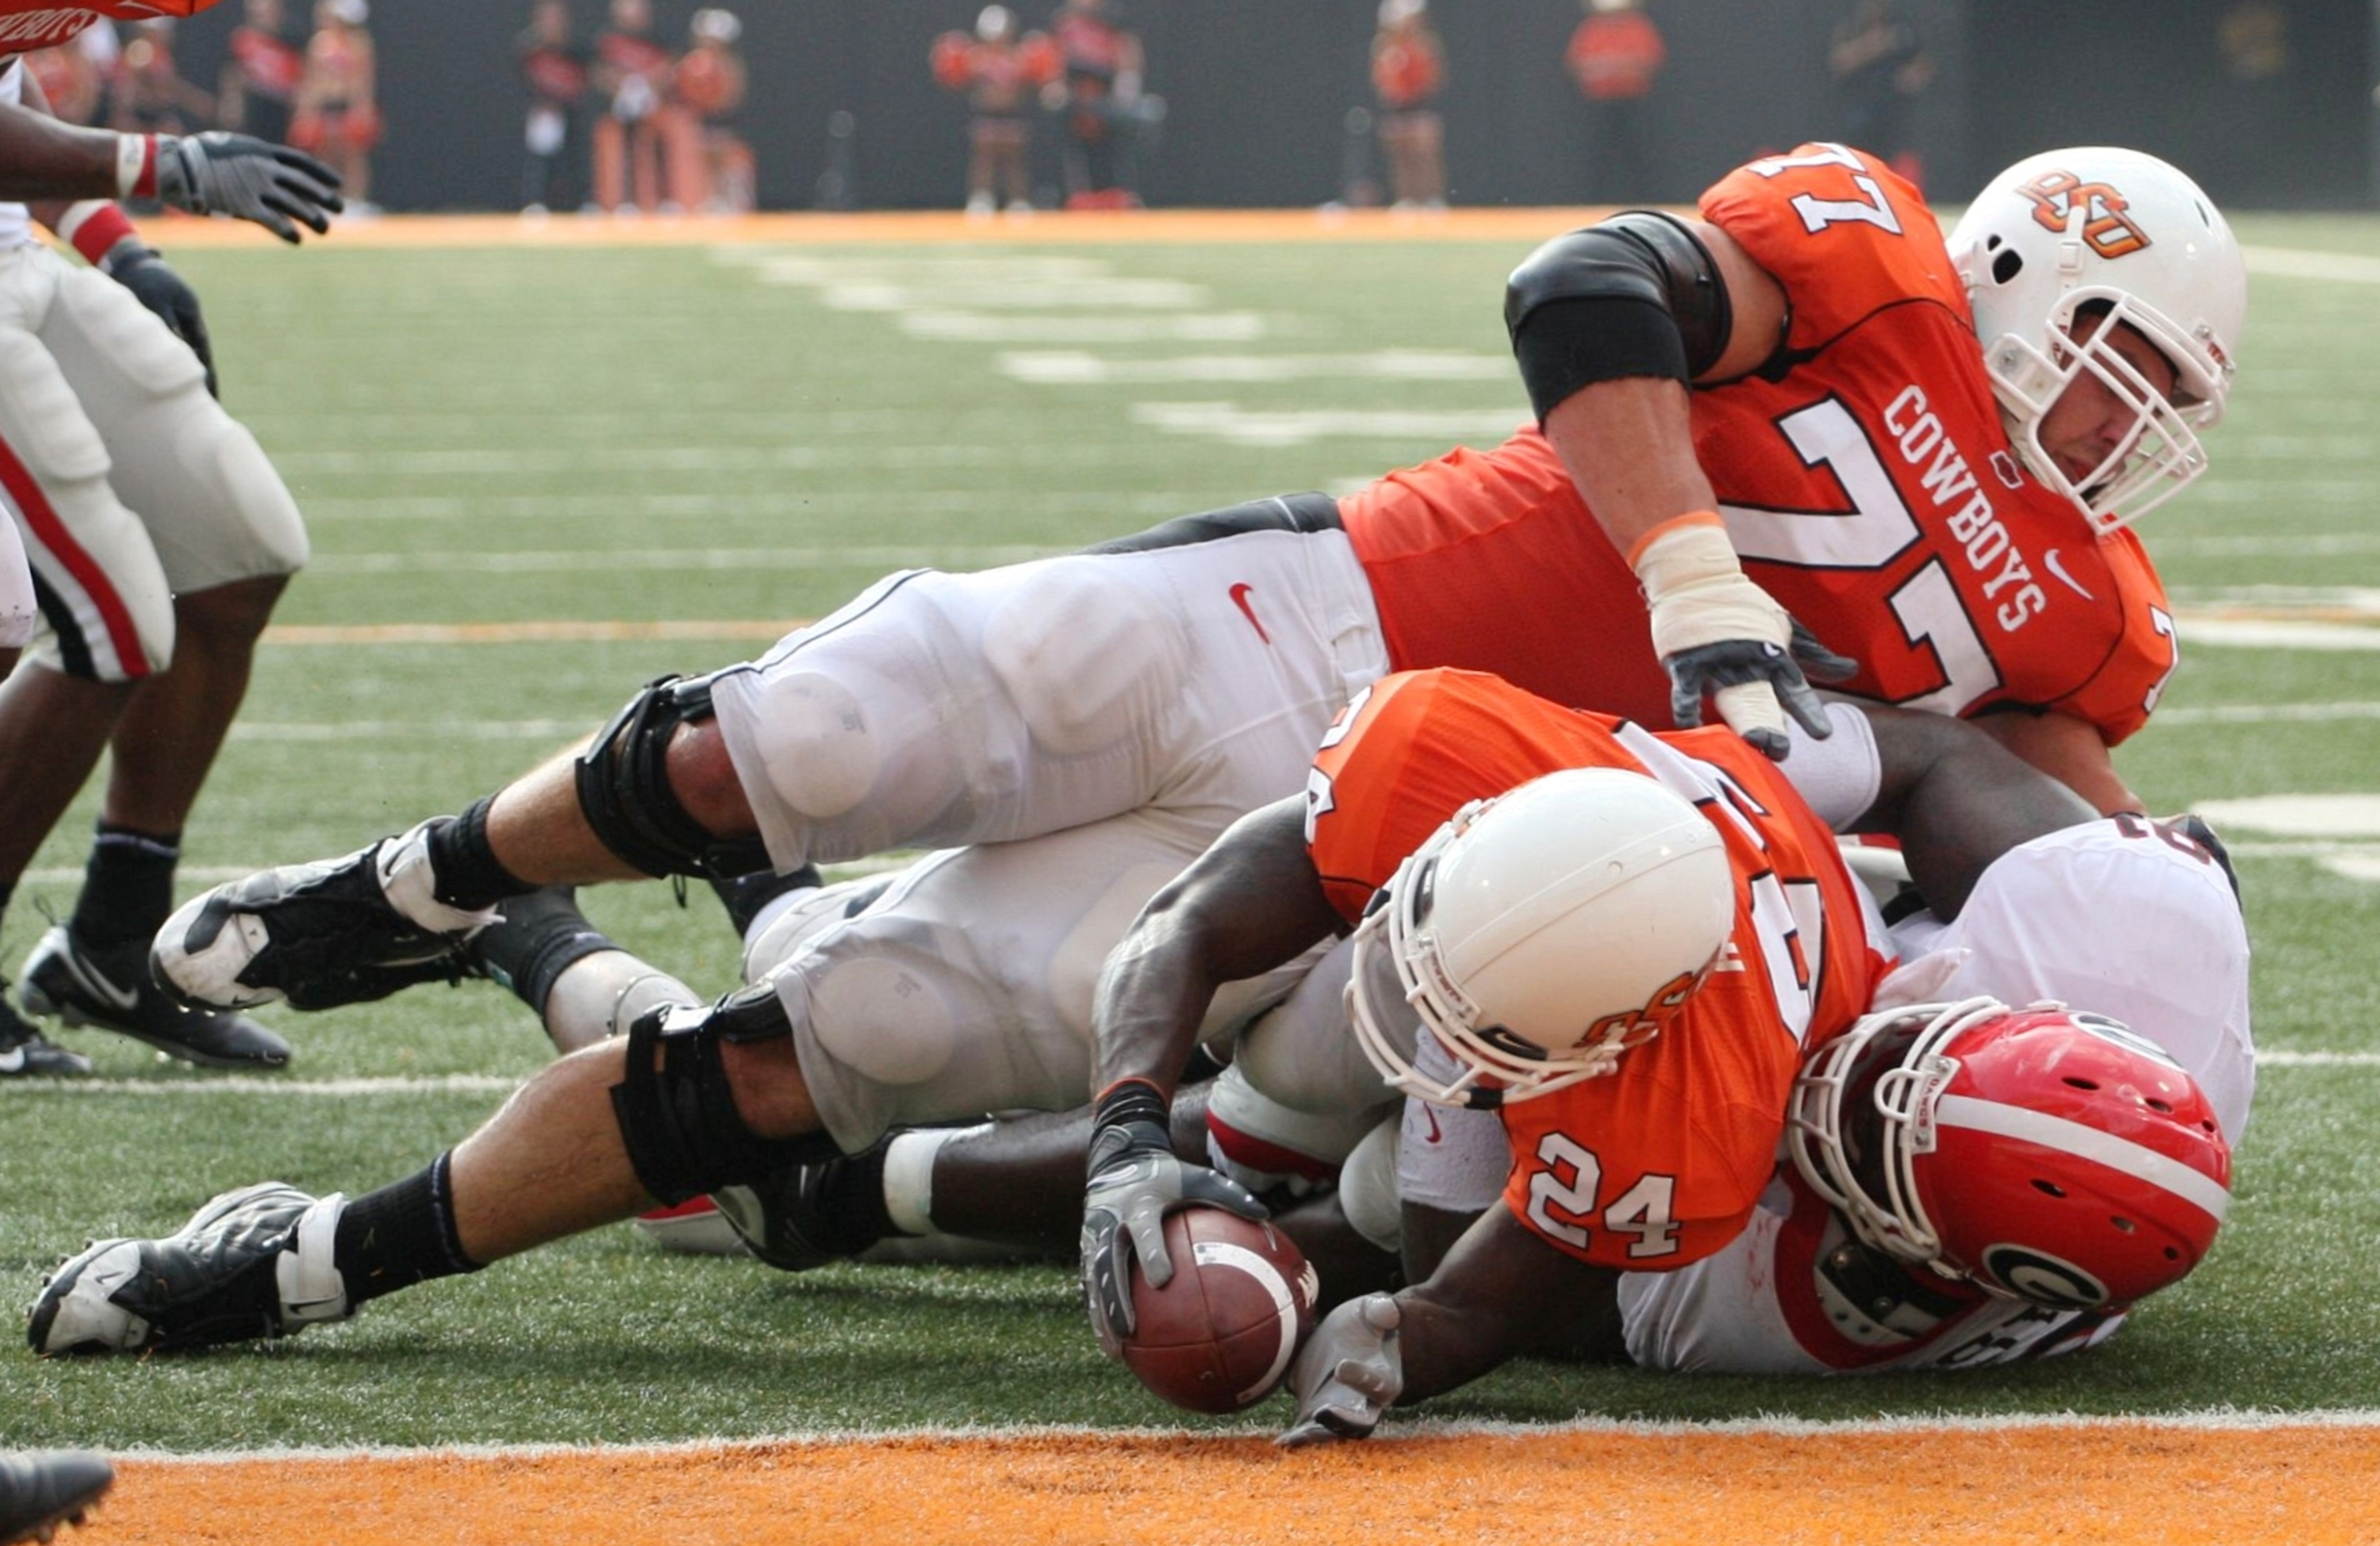 Kendall Hunter stretching for the end zone